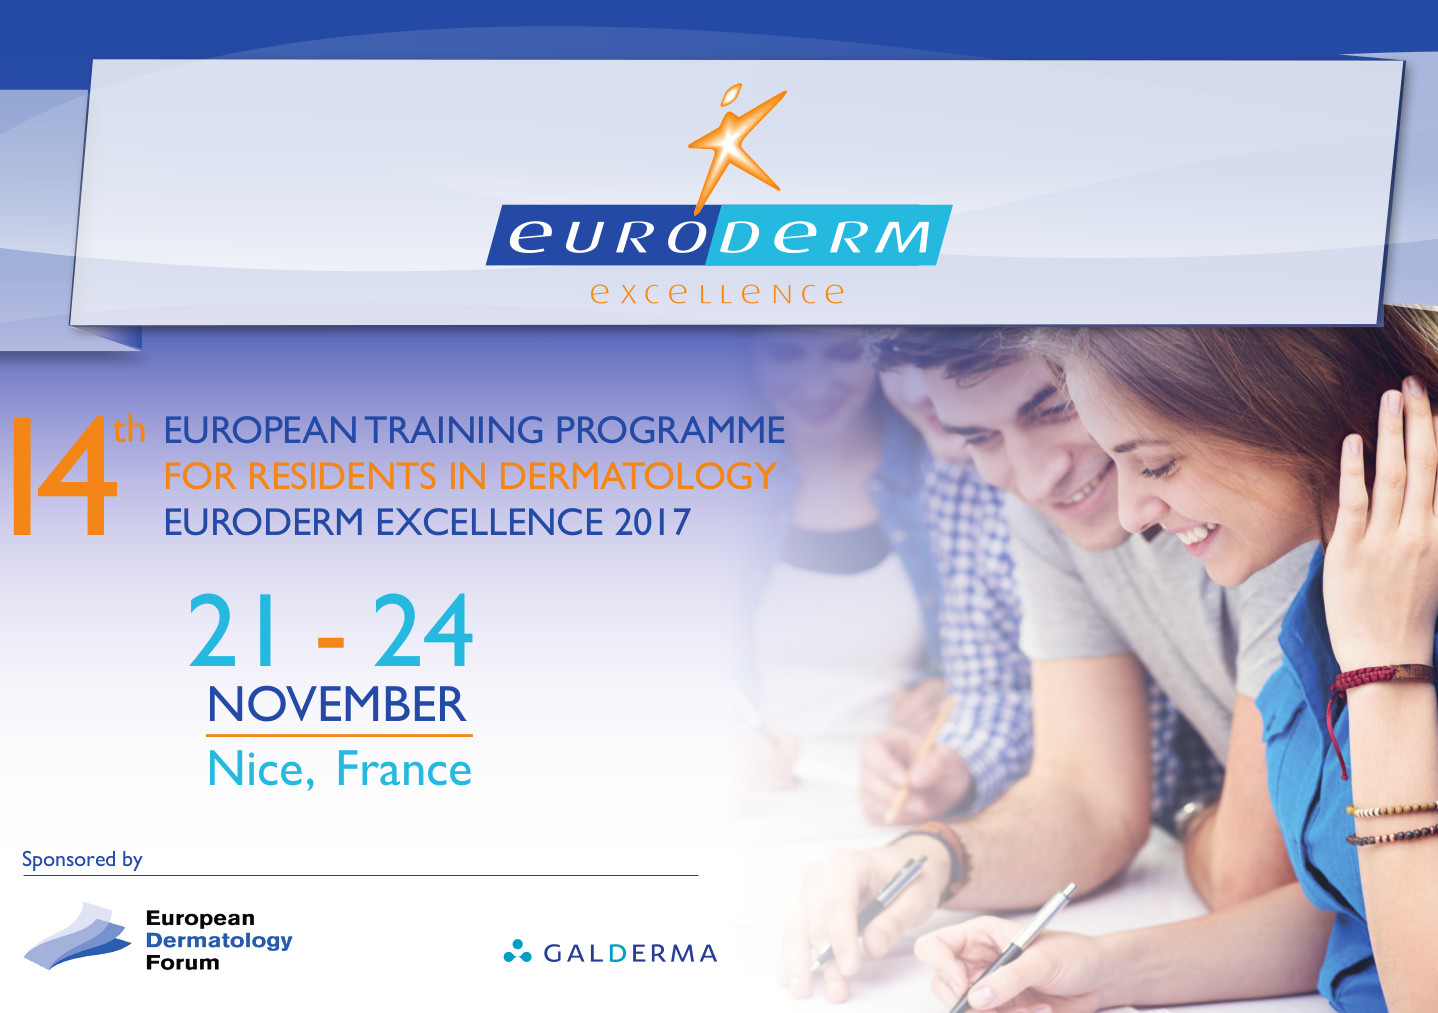 14th Edition of Euroderm Excellence Training Programme